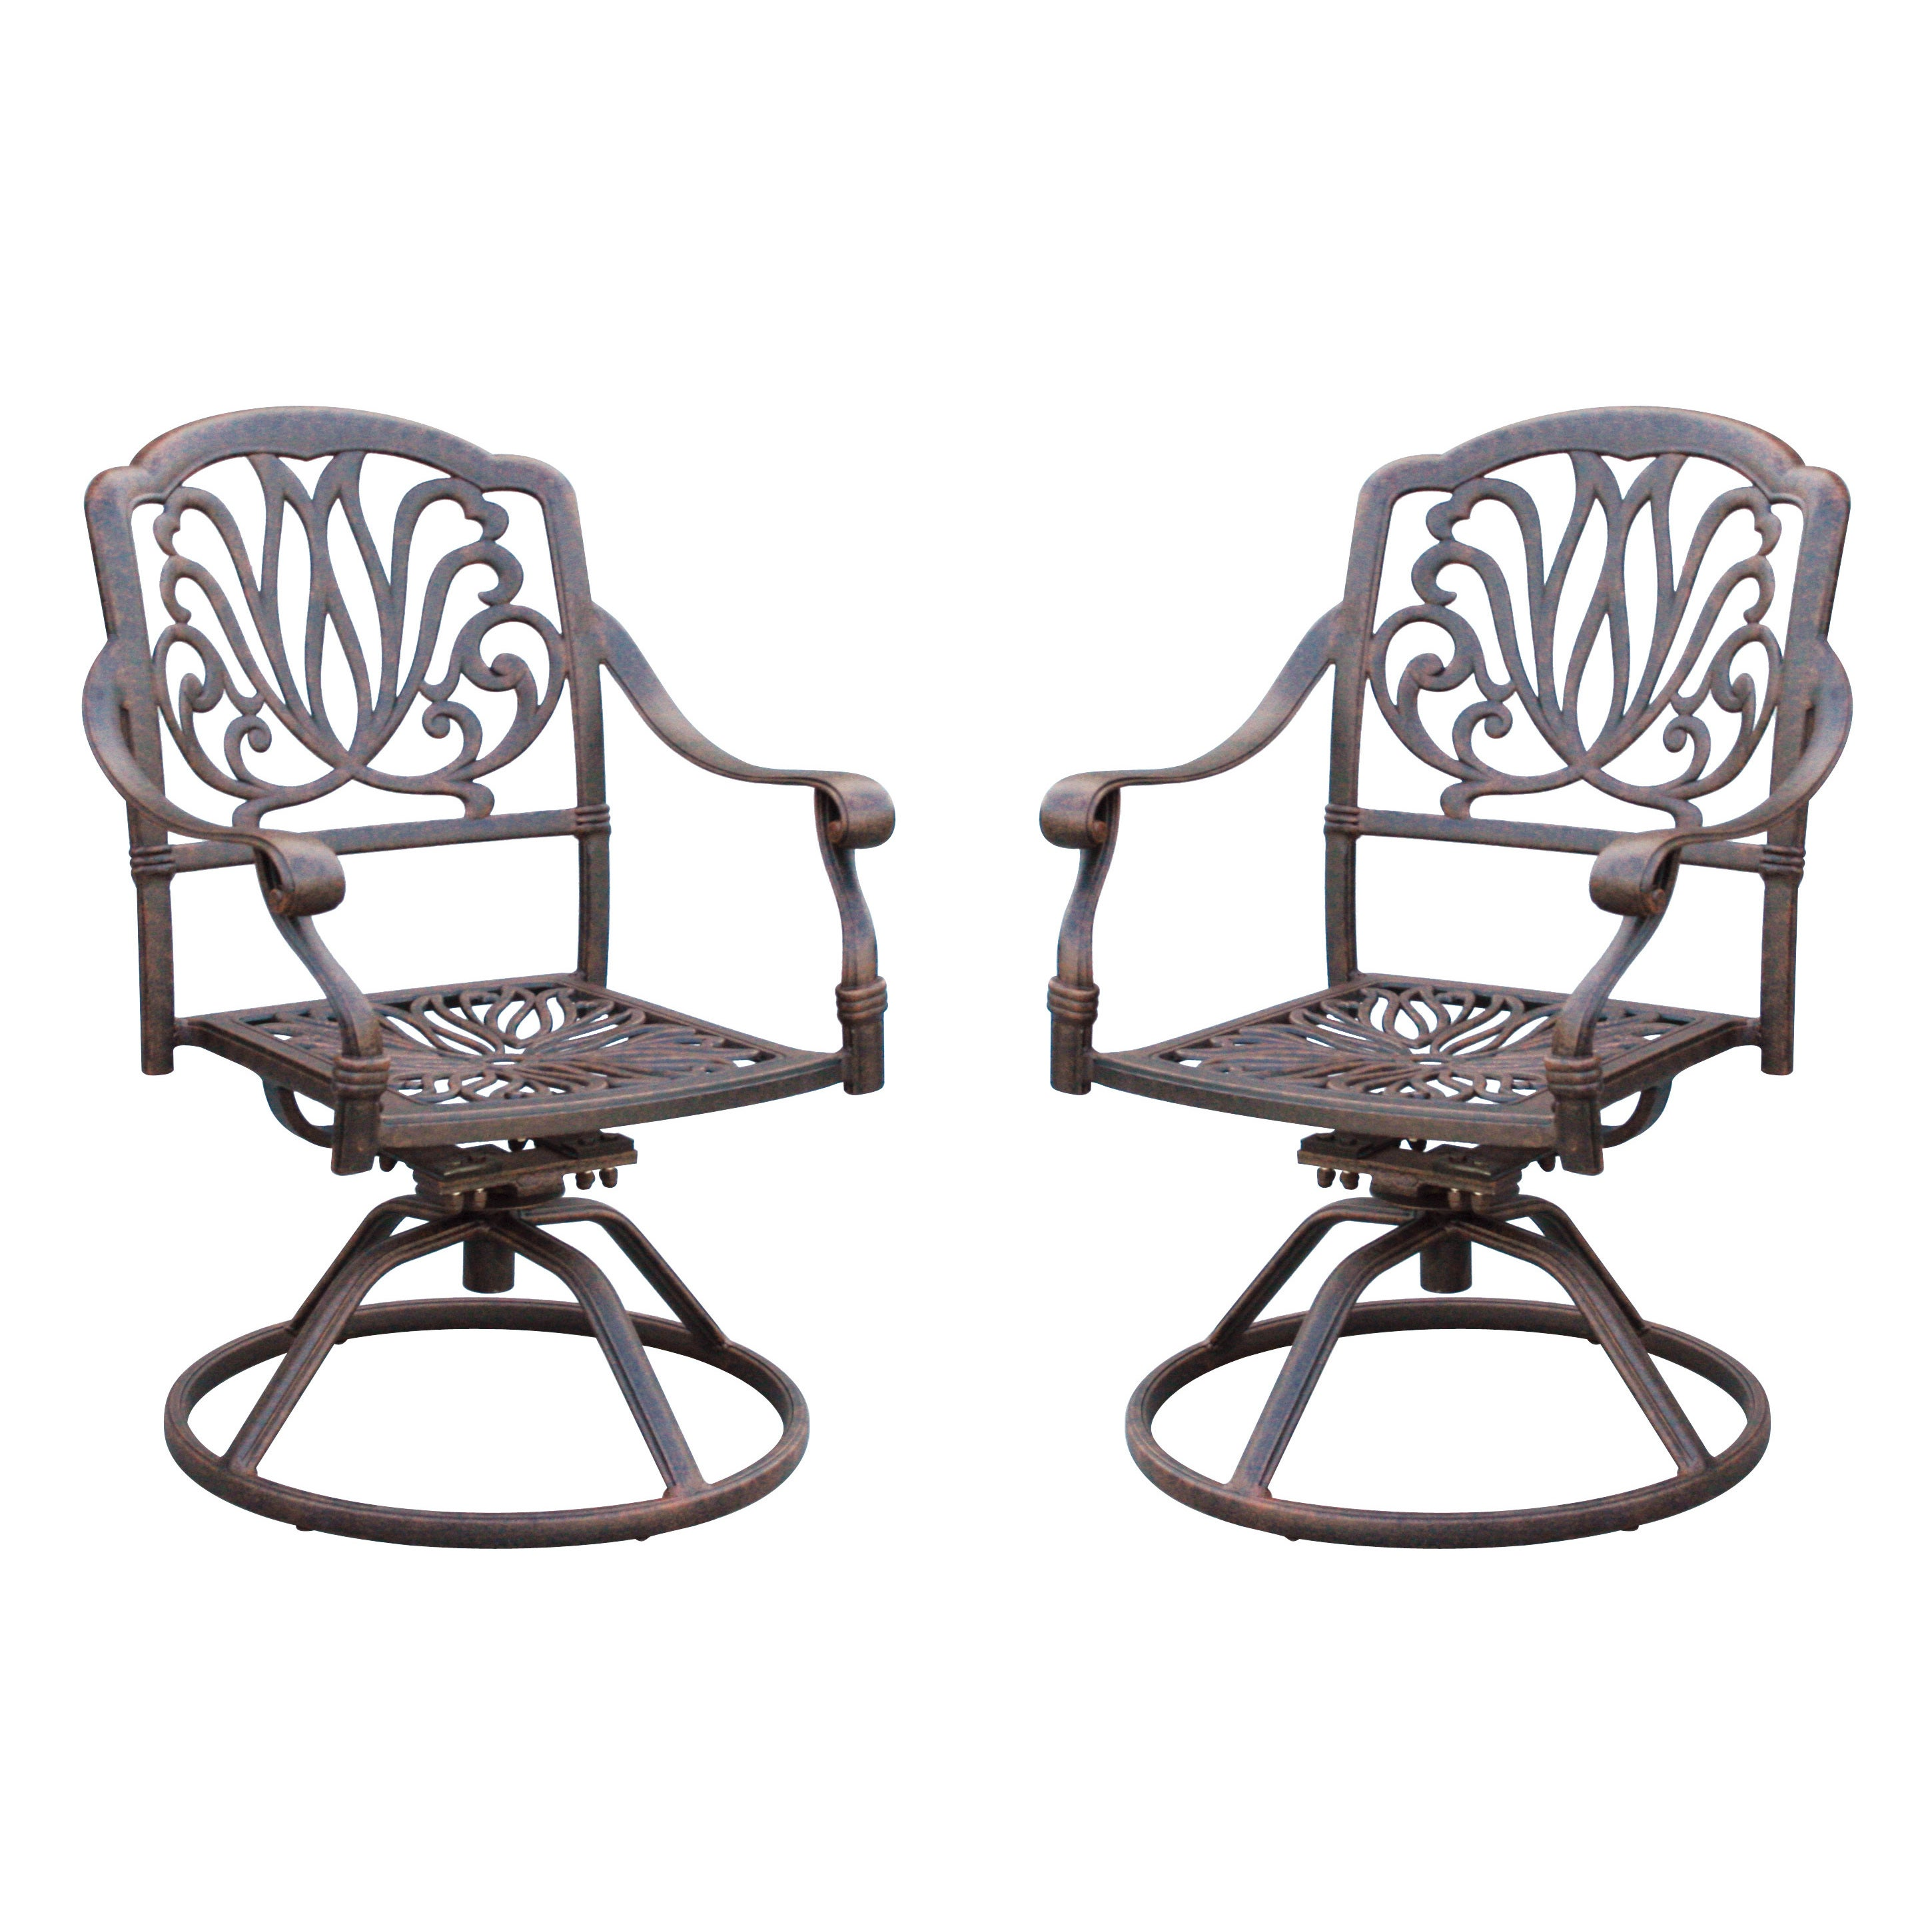 Darlee Elisabeth Cast Aluminum Swivel Rocker Dining Chair With Seat Cushion Set Of 2 Antique Bronze Finish Free Shipping On Orders Over 45